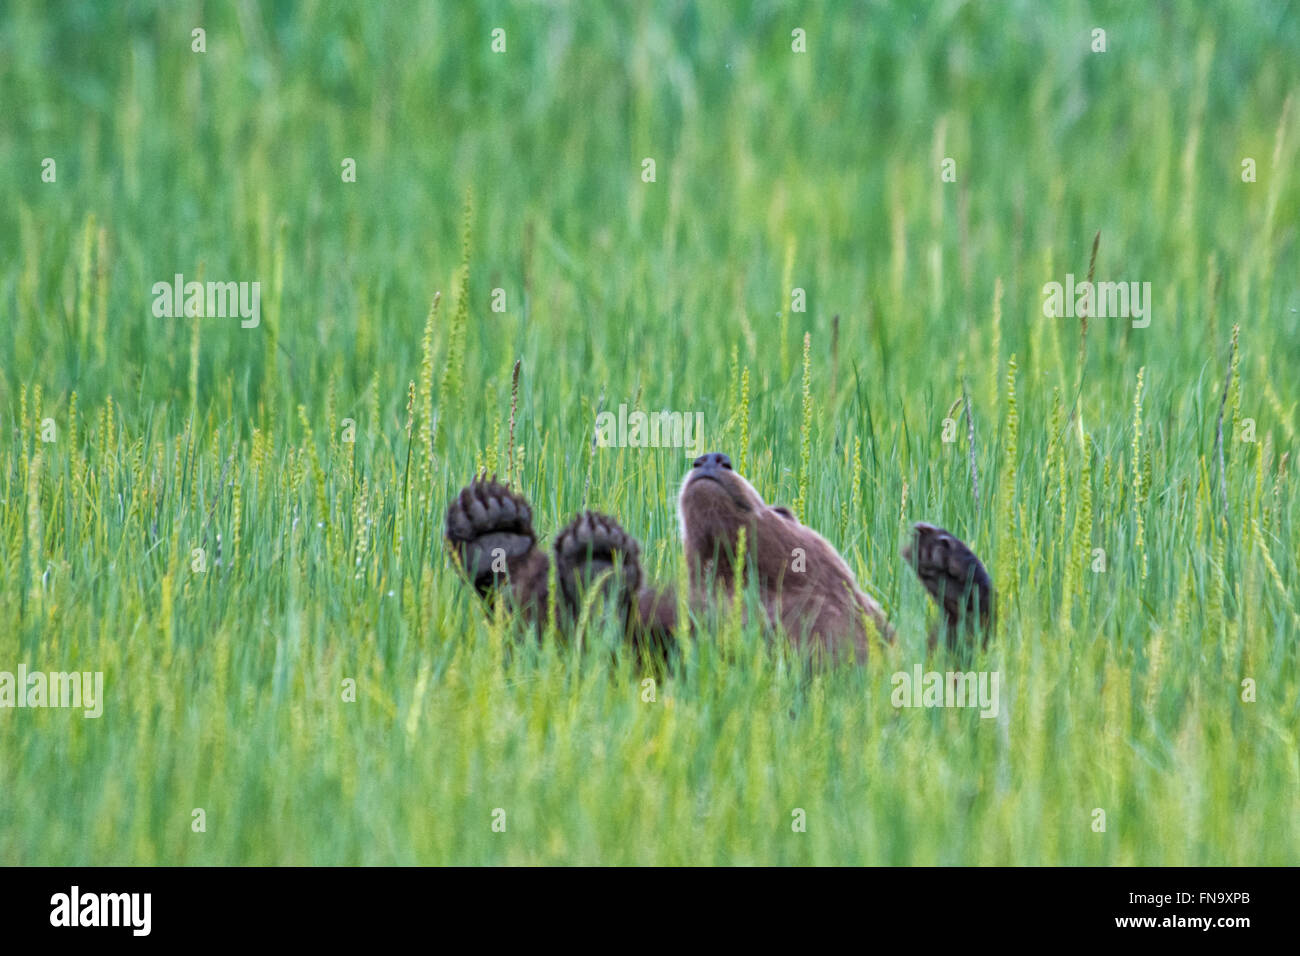 Small Grizzly Bear Spring Cub, Ursus arctos, rolling in the sedge grass in Lake Clark National Park, Alaska, USA - Stock Image